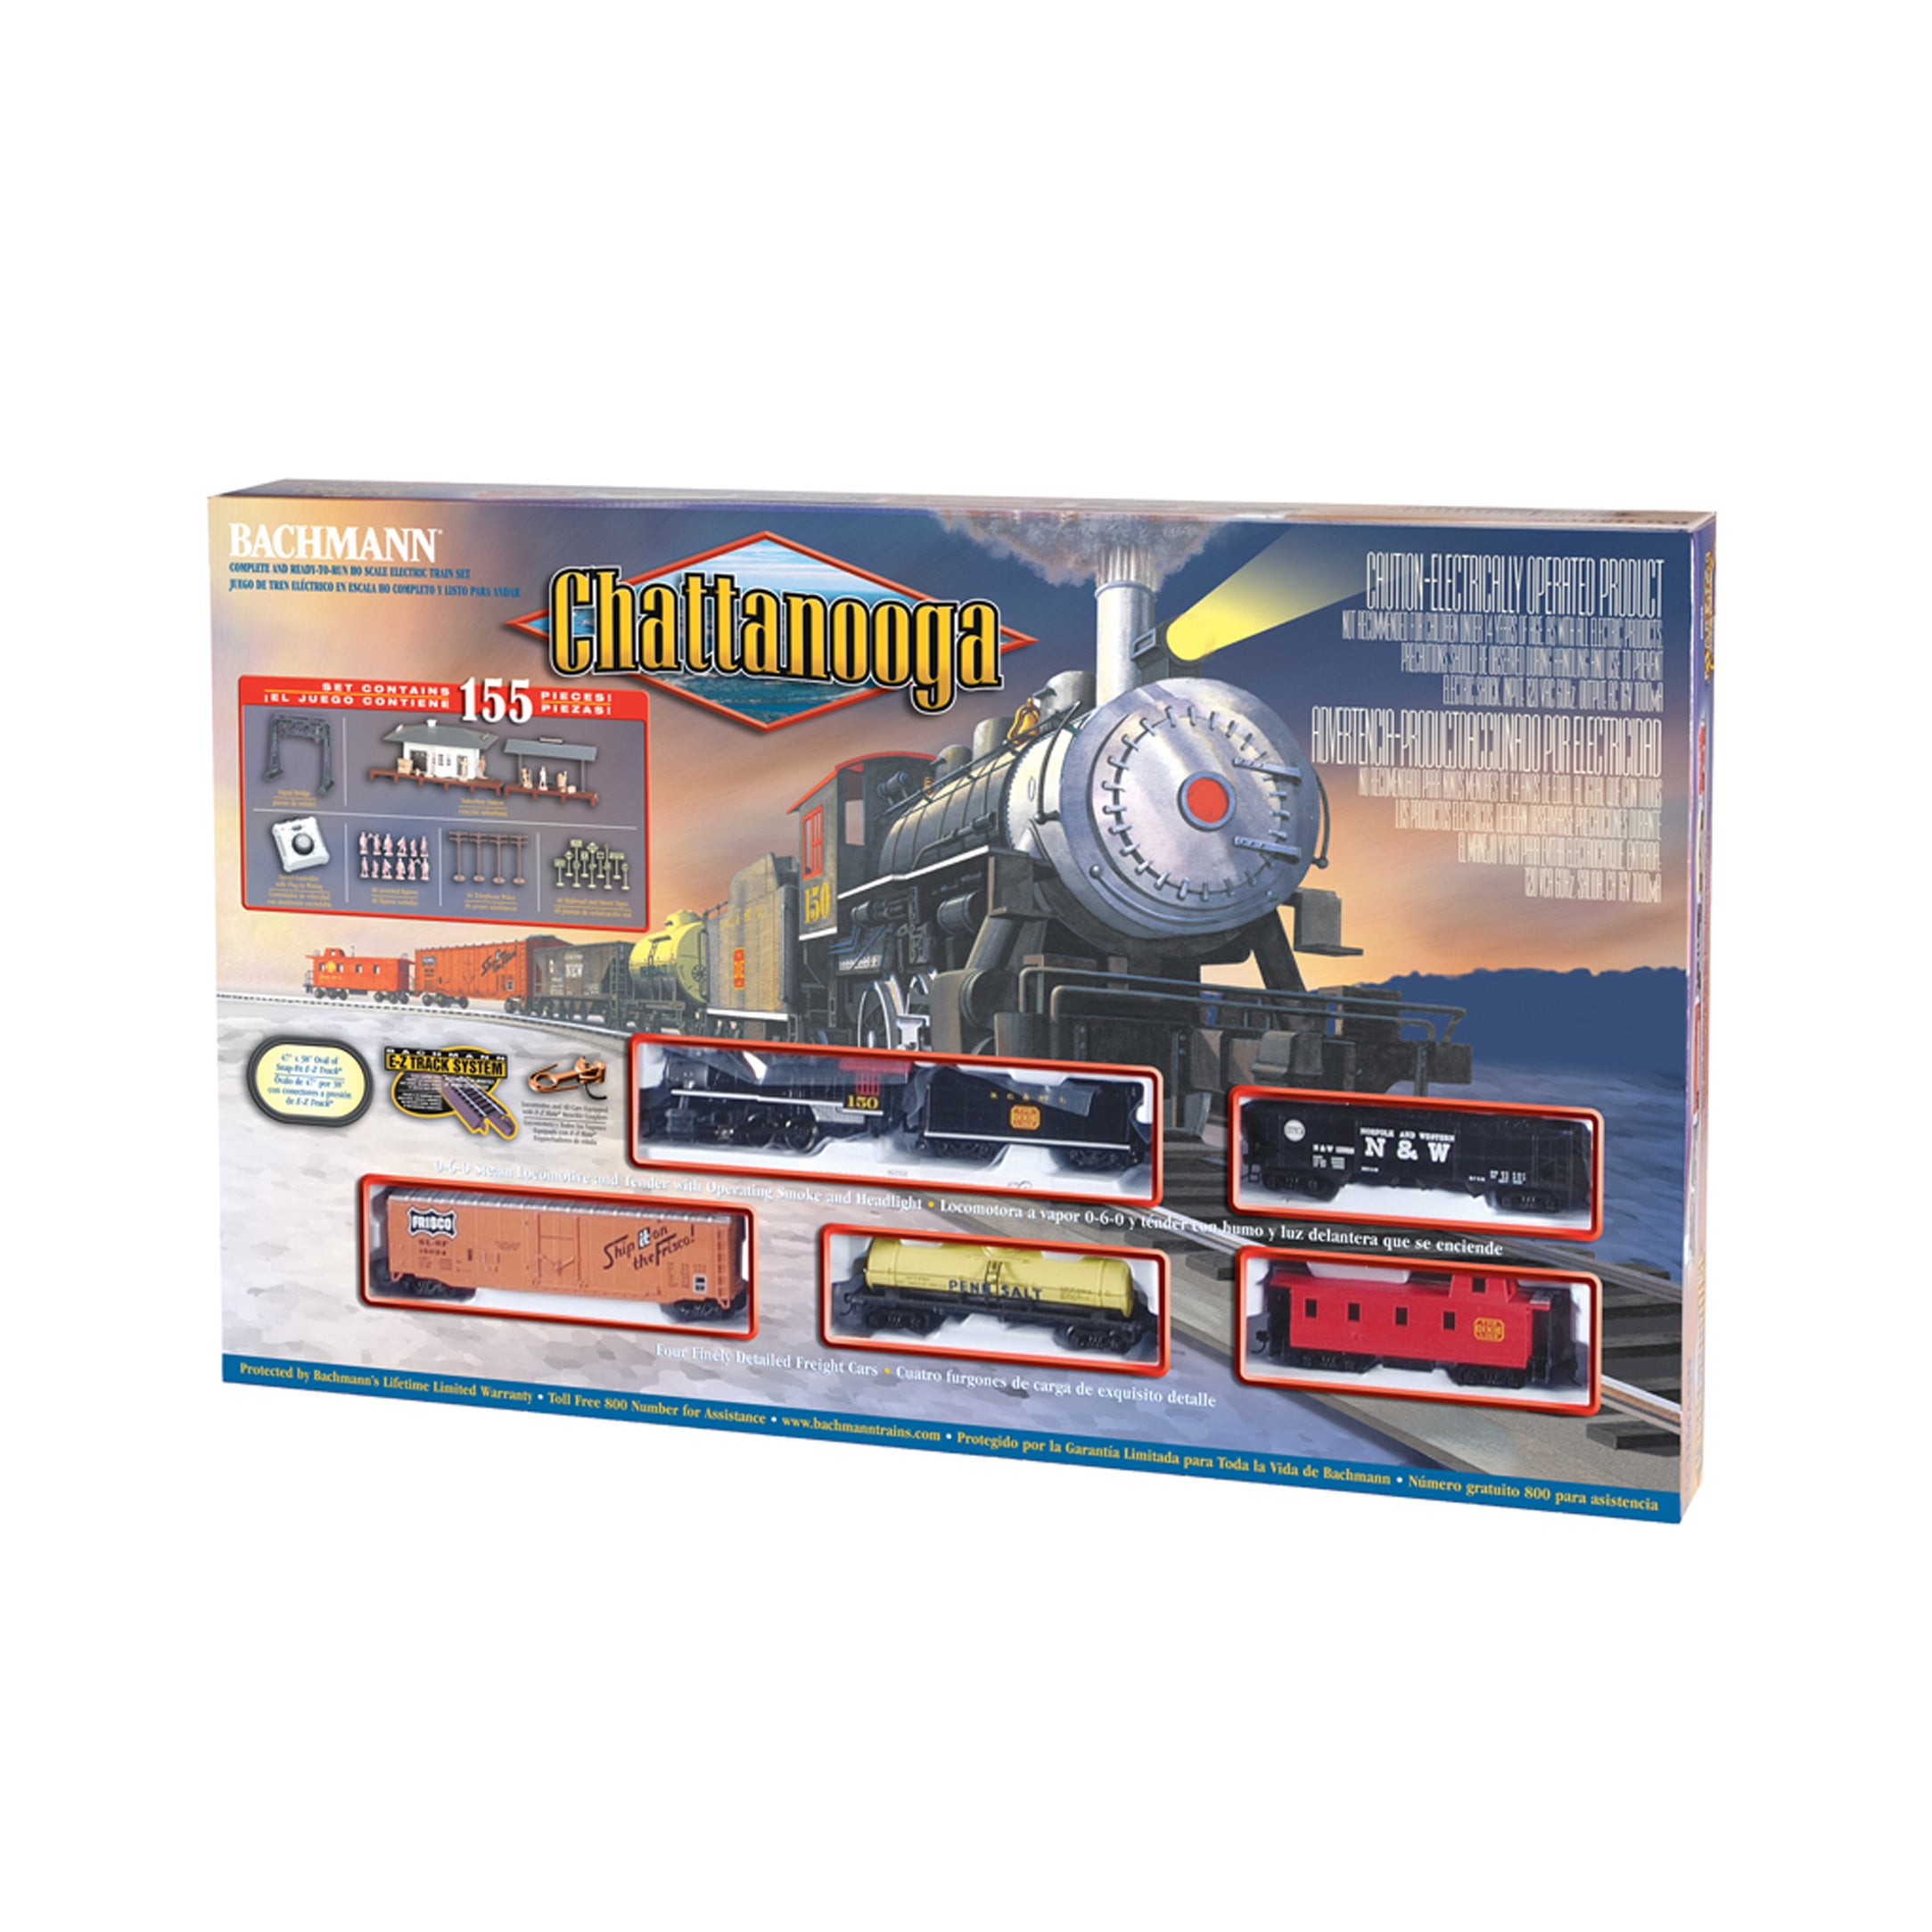 Bachmann Trains Chattanooga HO Scale Ready To Run Electri...